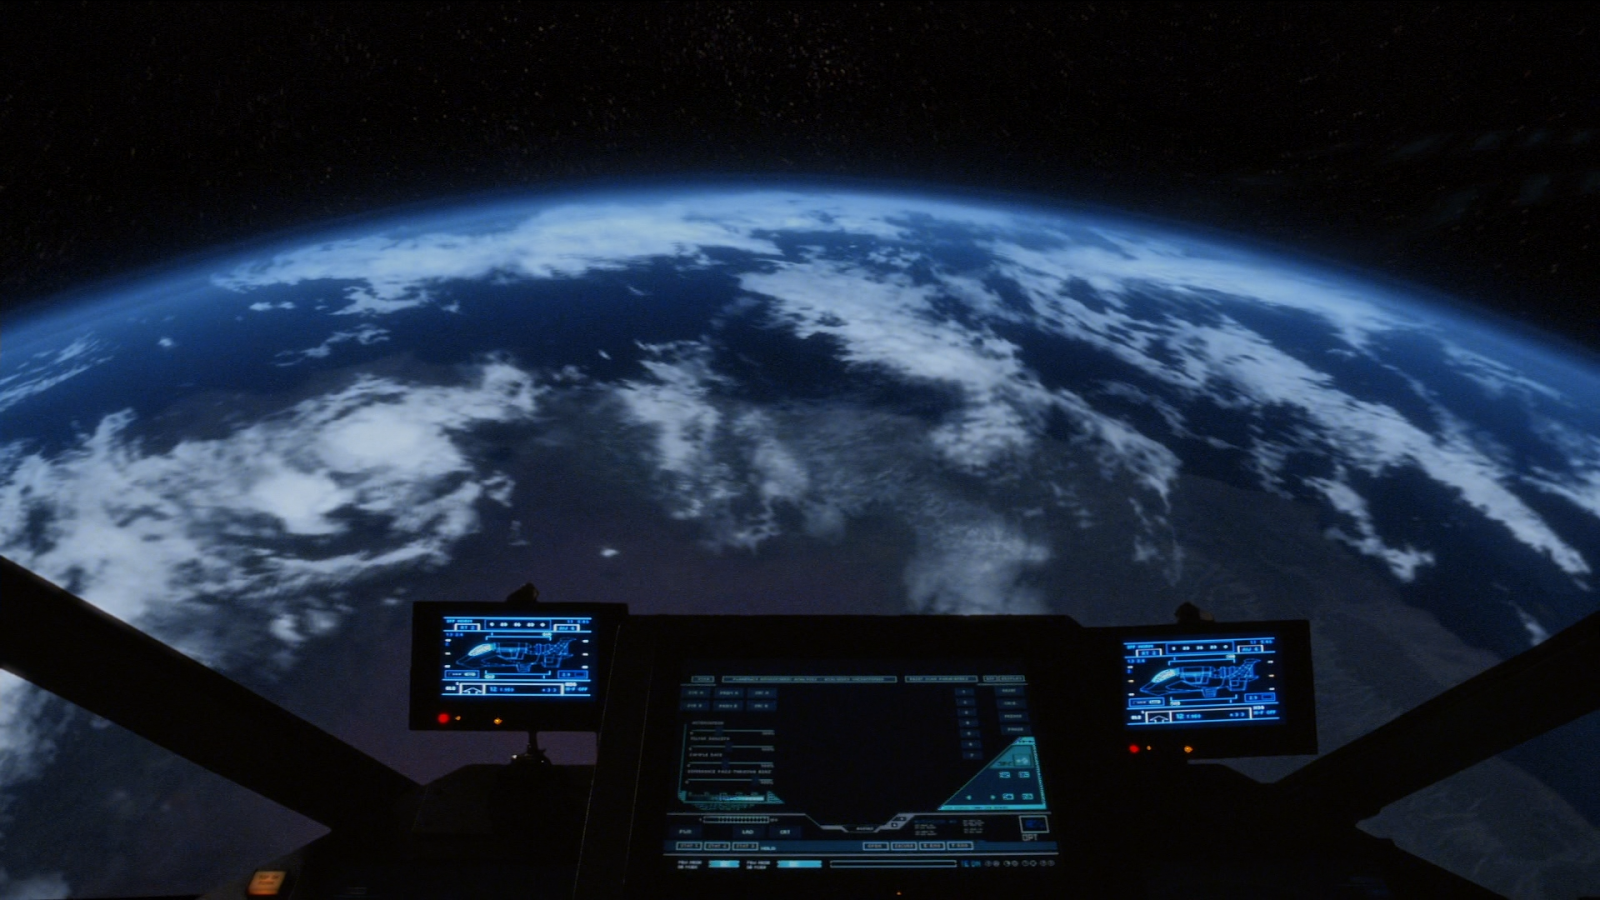 Planet Kobol from the show Battlestar Galactica, as seen in S01E12.